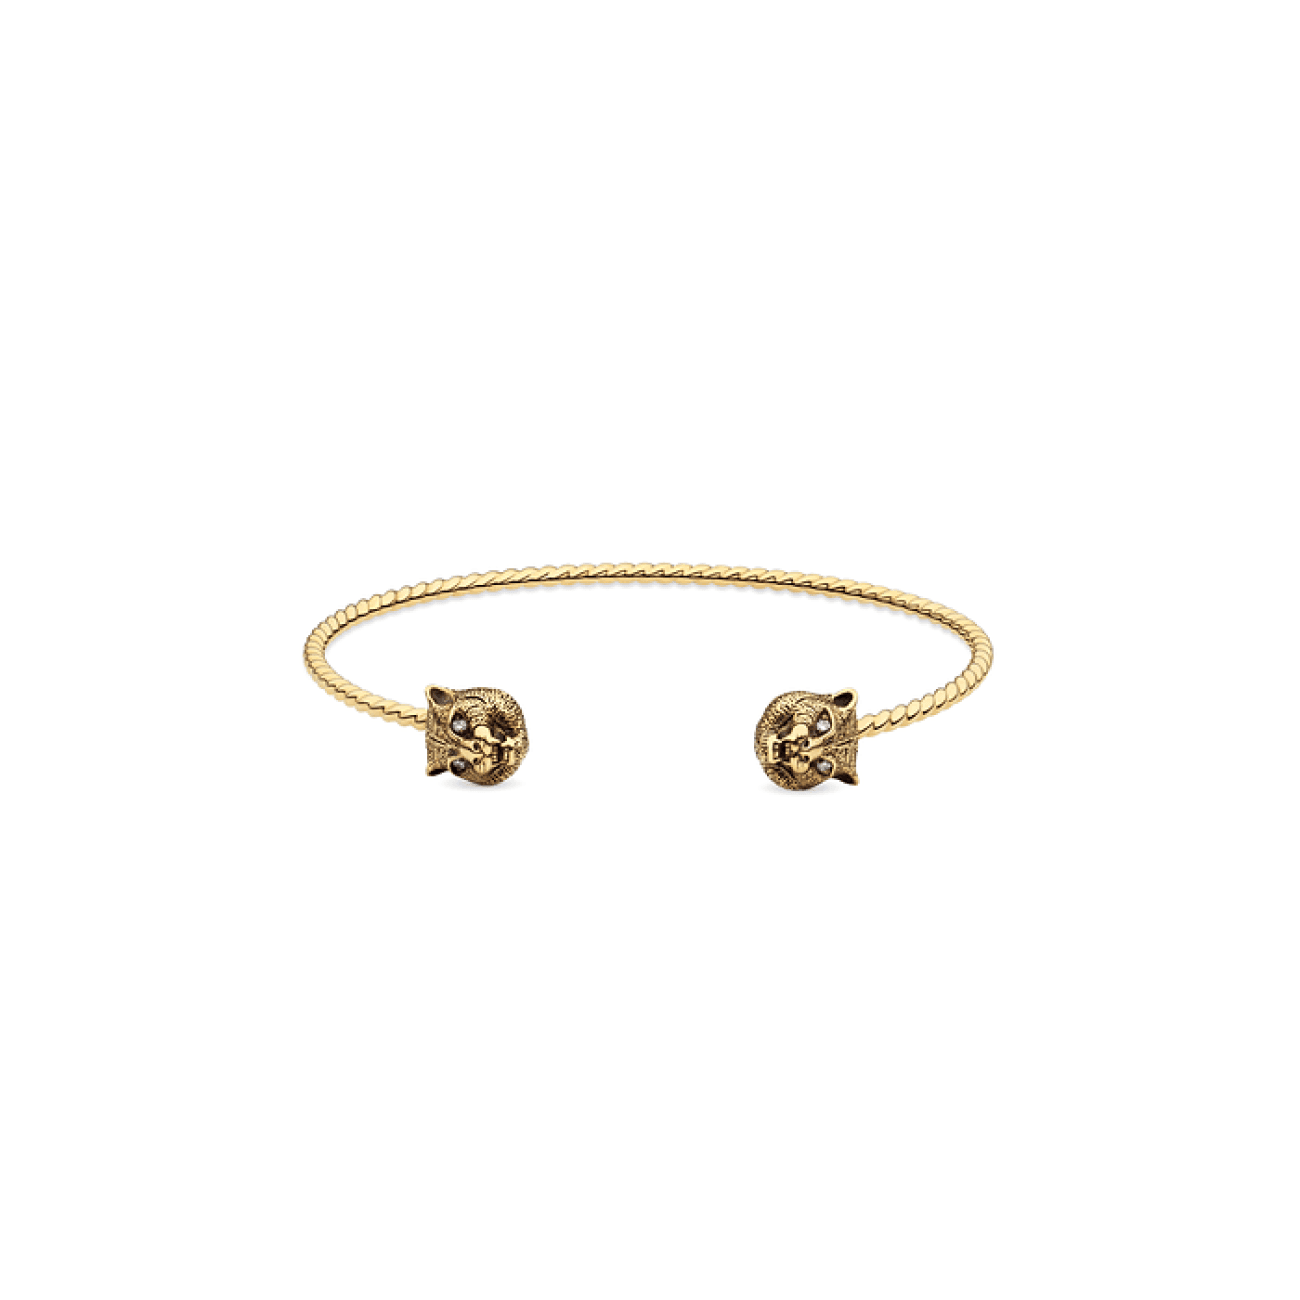 Gucci Jewelry - Black aged lion bangle | Manfredi Jewels